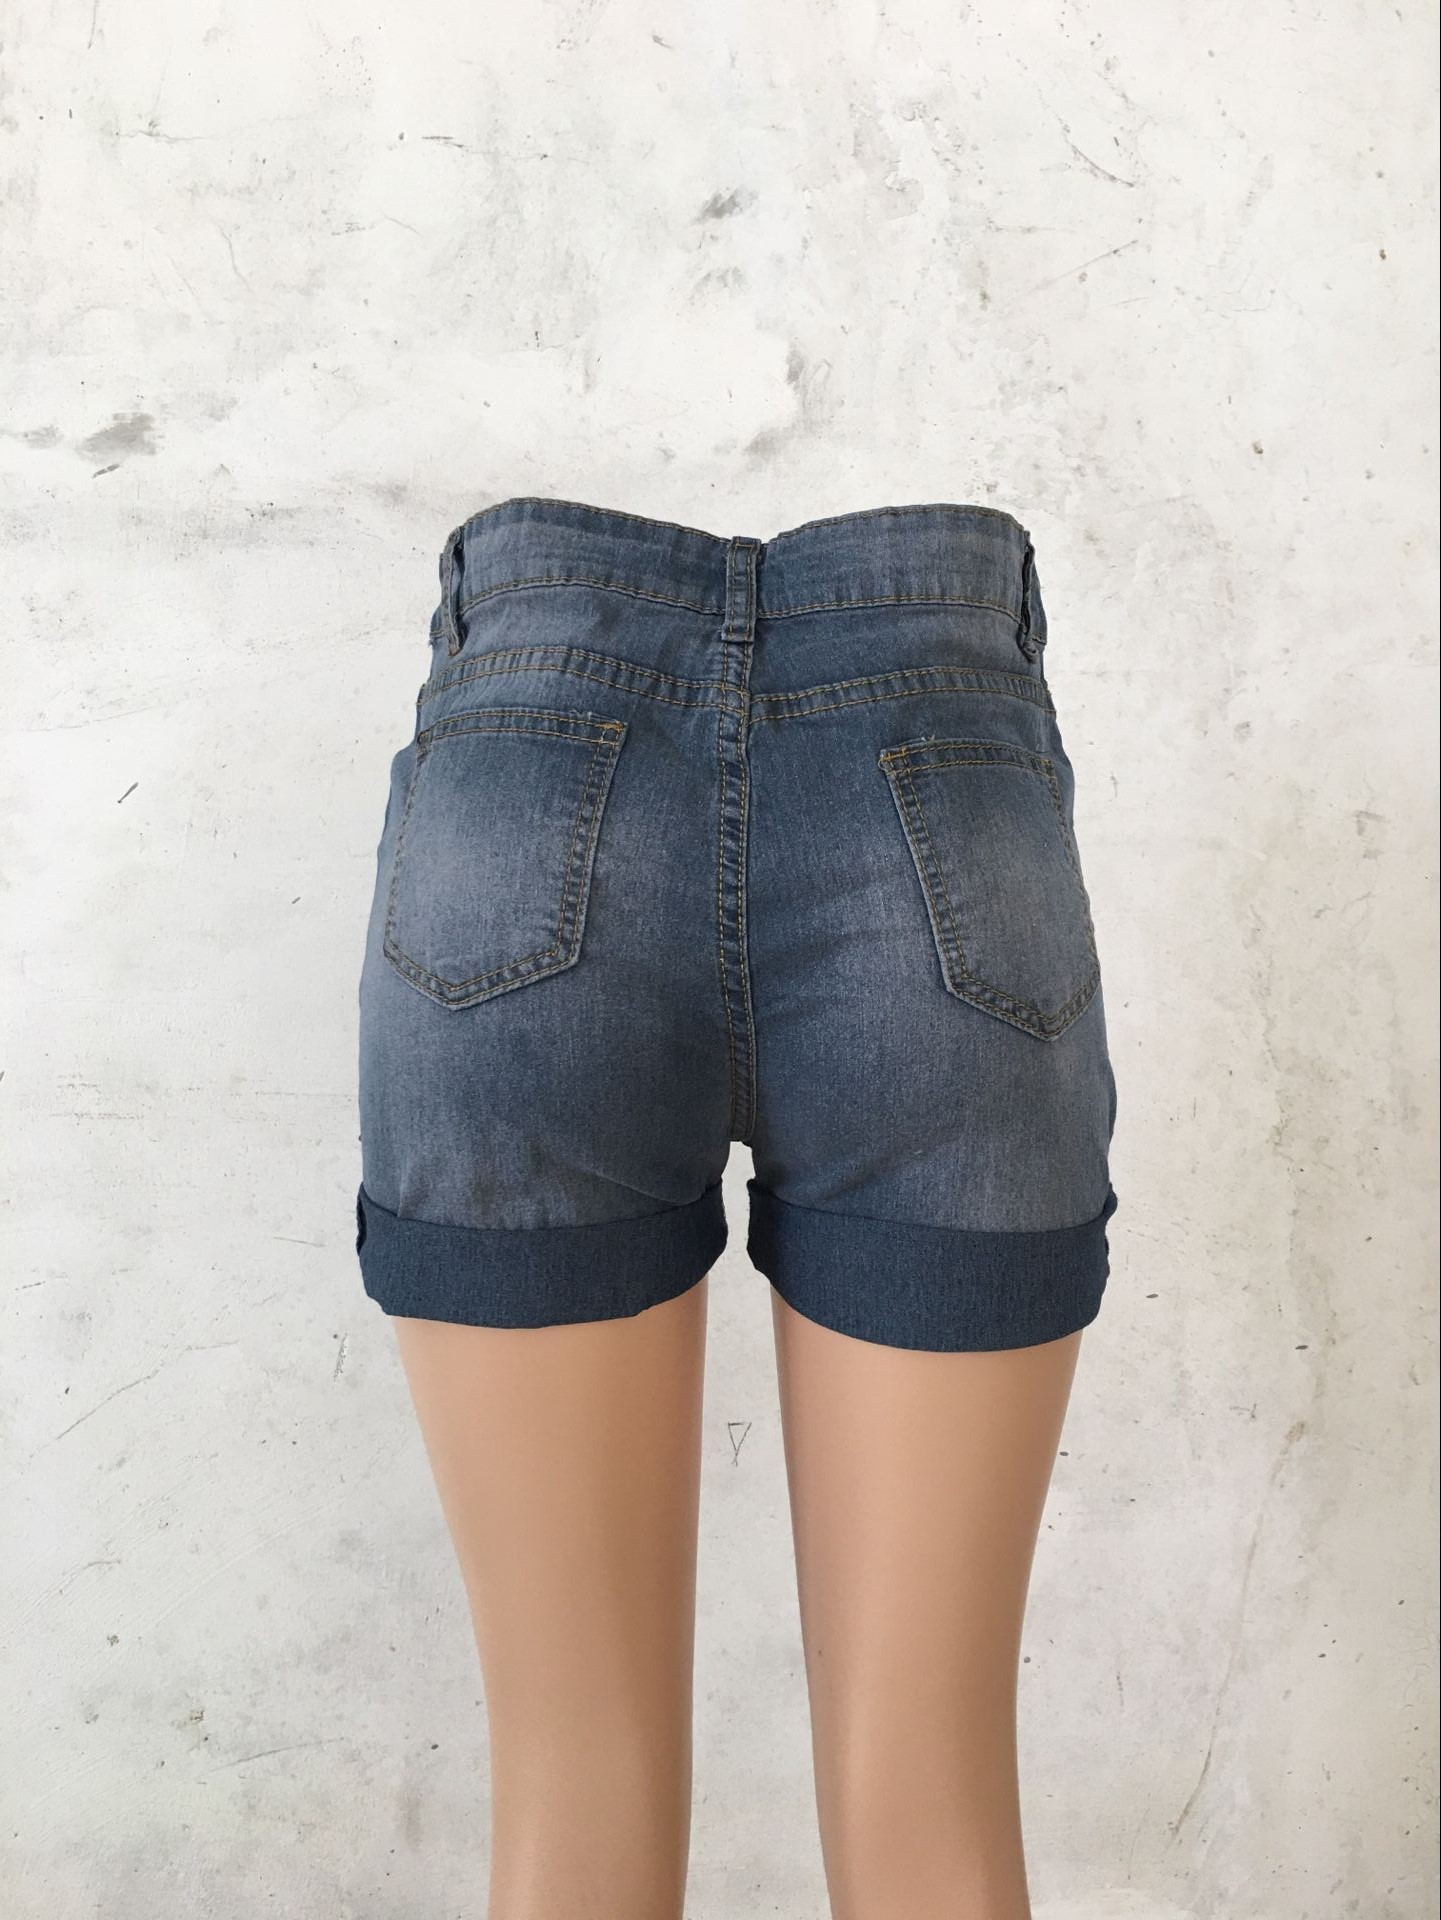 2018 Summer Hollow Out Sexy High Waist High Stretch Cowboy Shorts Female Hot Shorts Casual Denim Short Pants Women in Jeans from Women 39 s Clothing